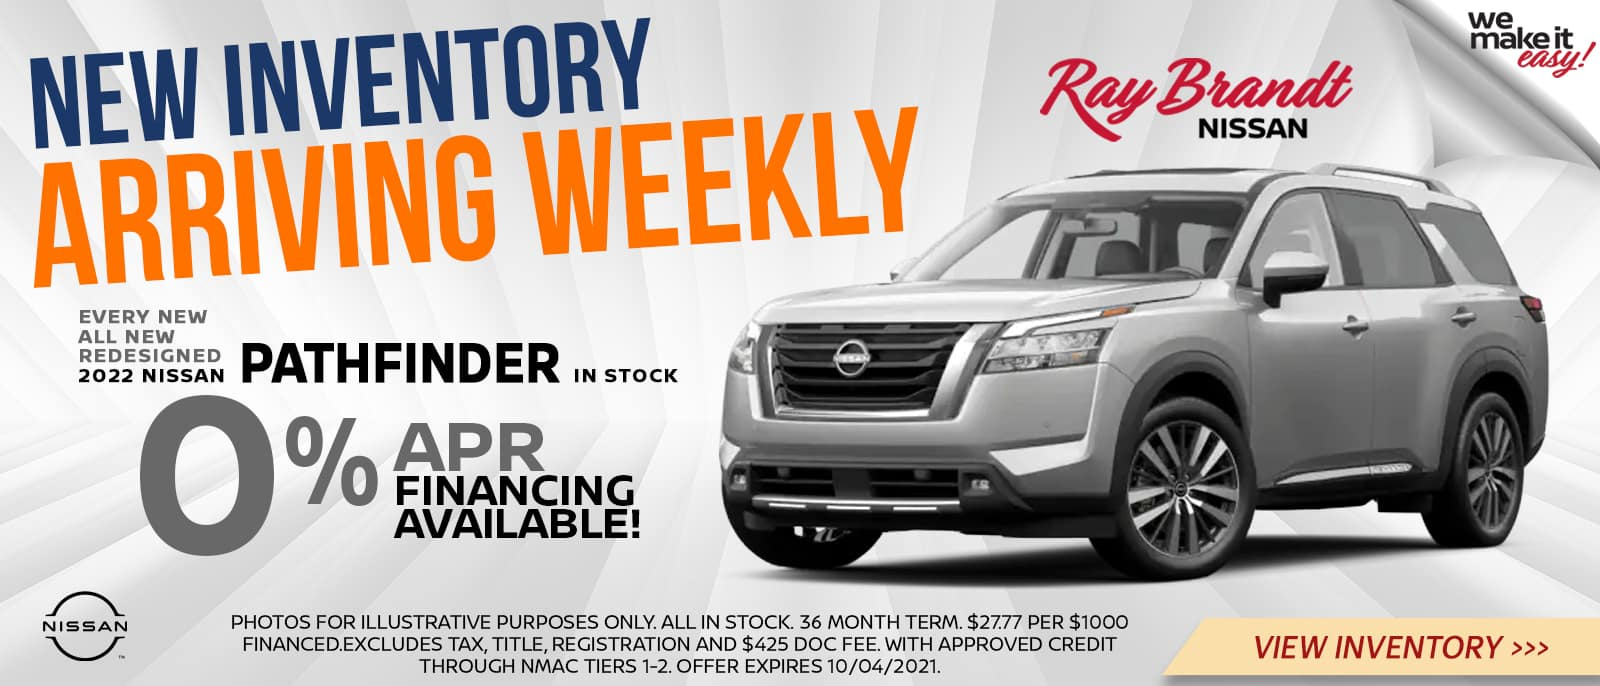 New Inventory Arriving Weekly 0% APR on Nissan Pathfinder